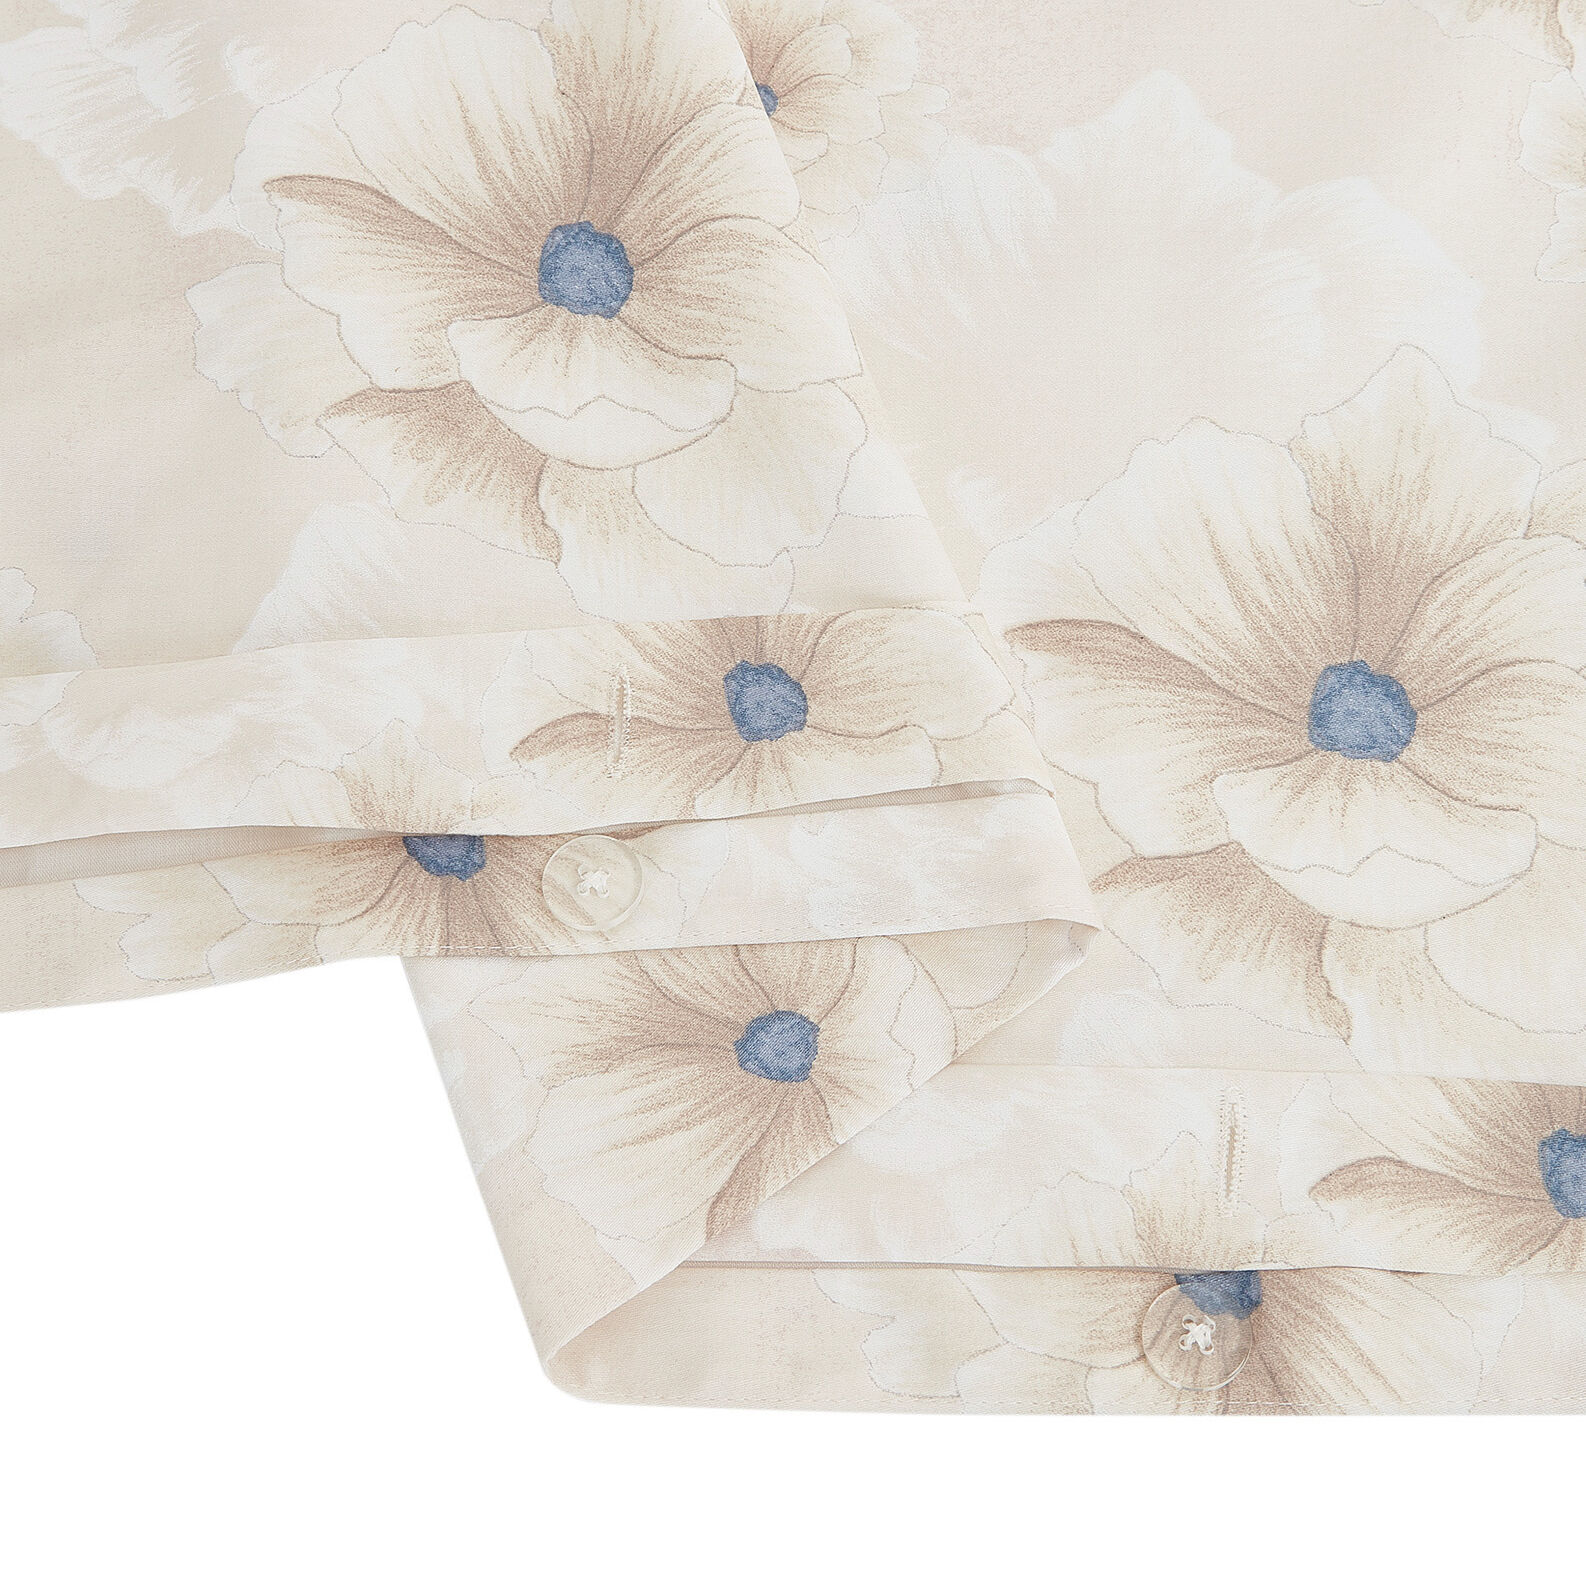 Cotton satin bed sheet set with flowers pattern